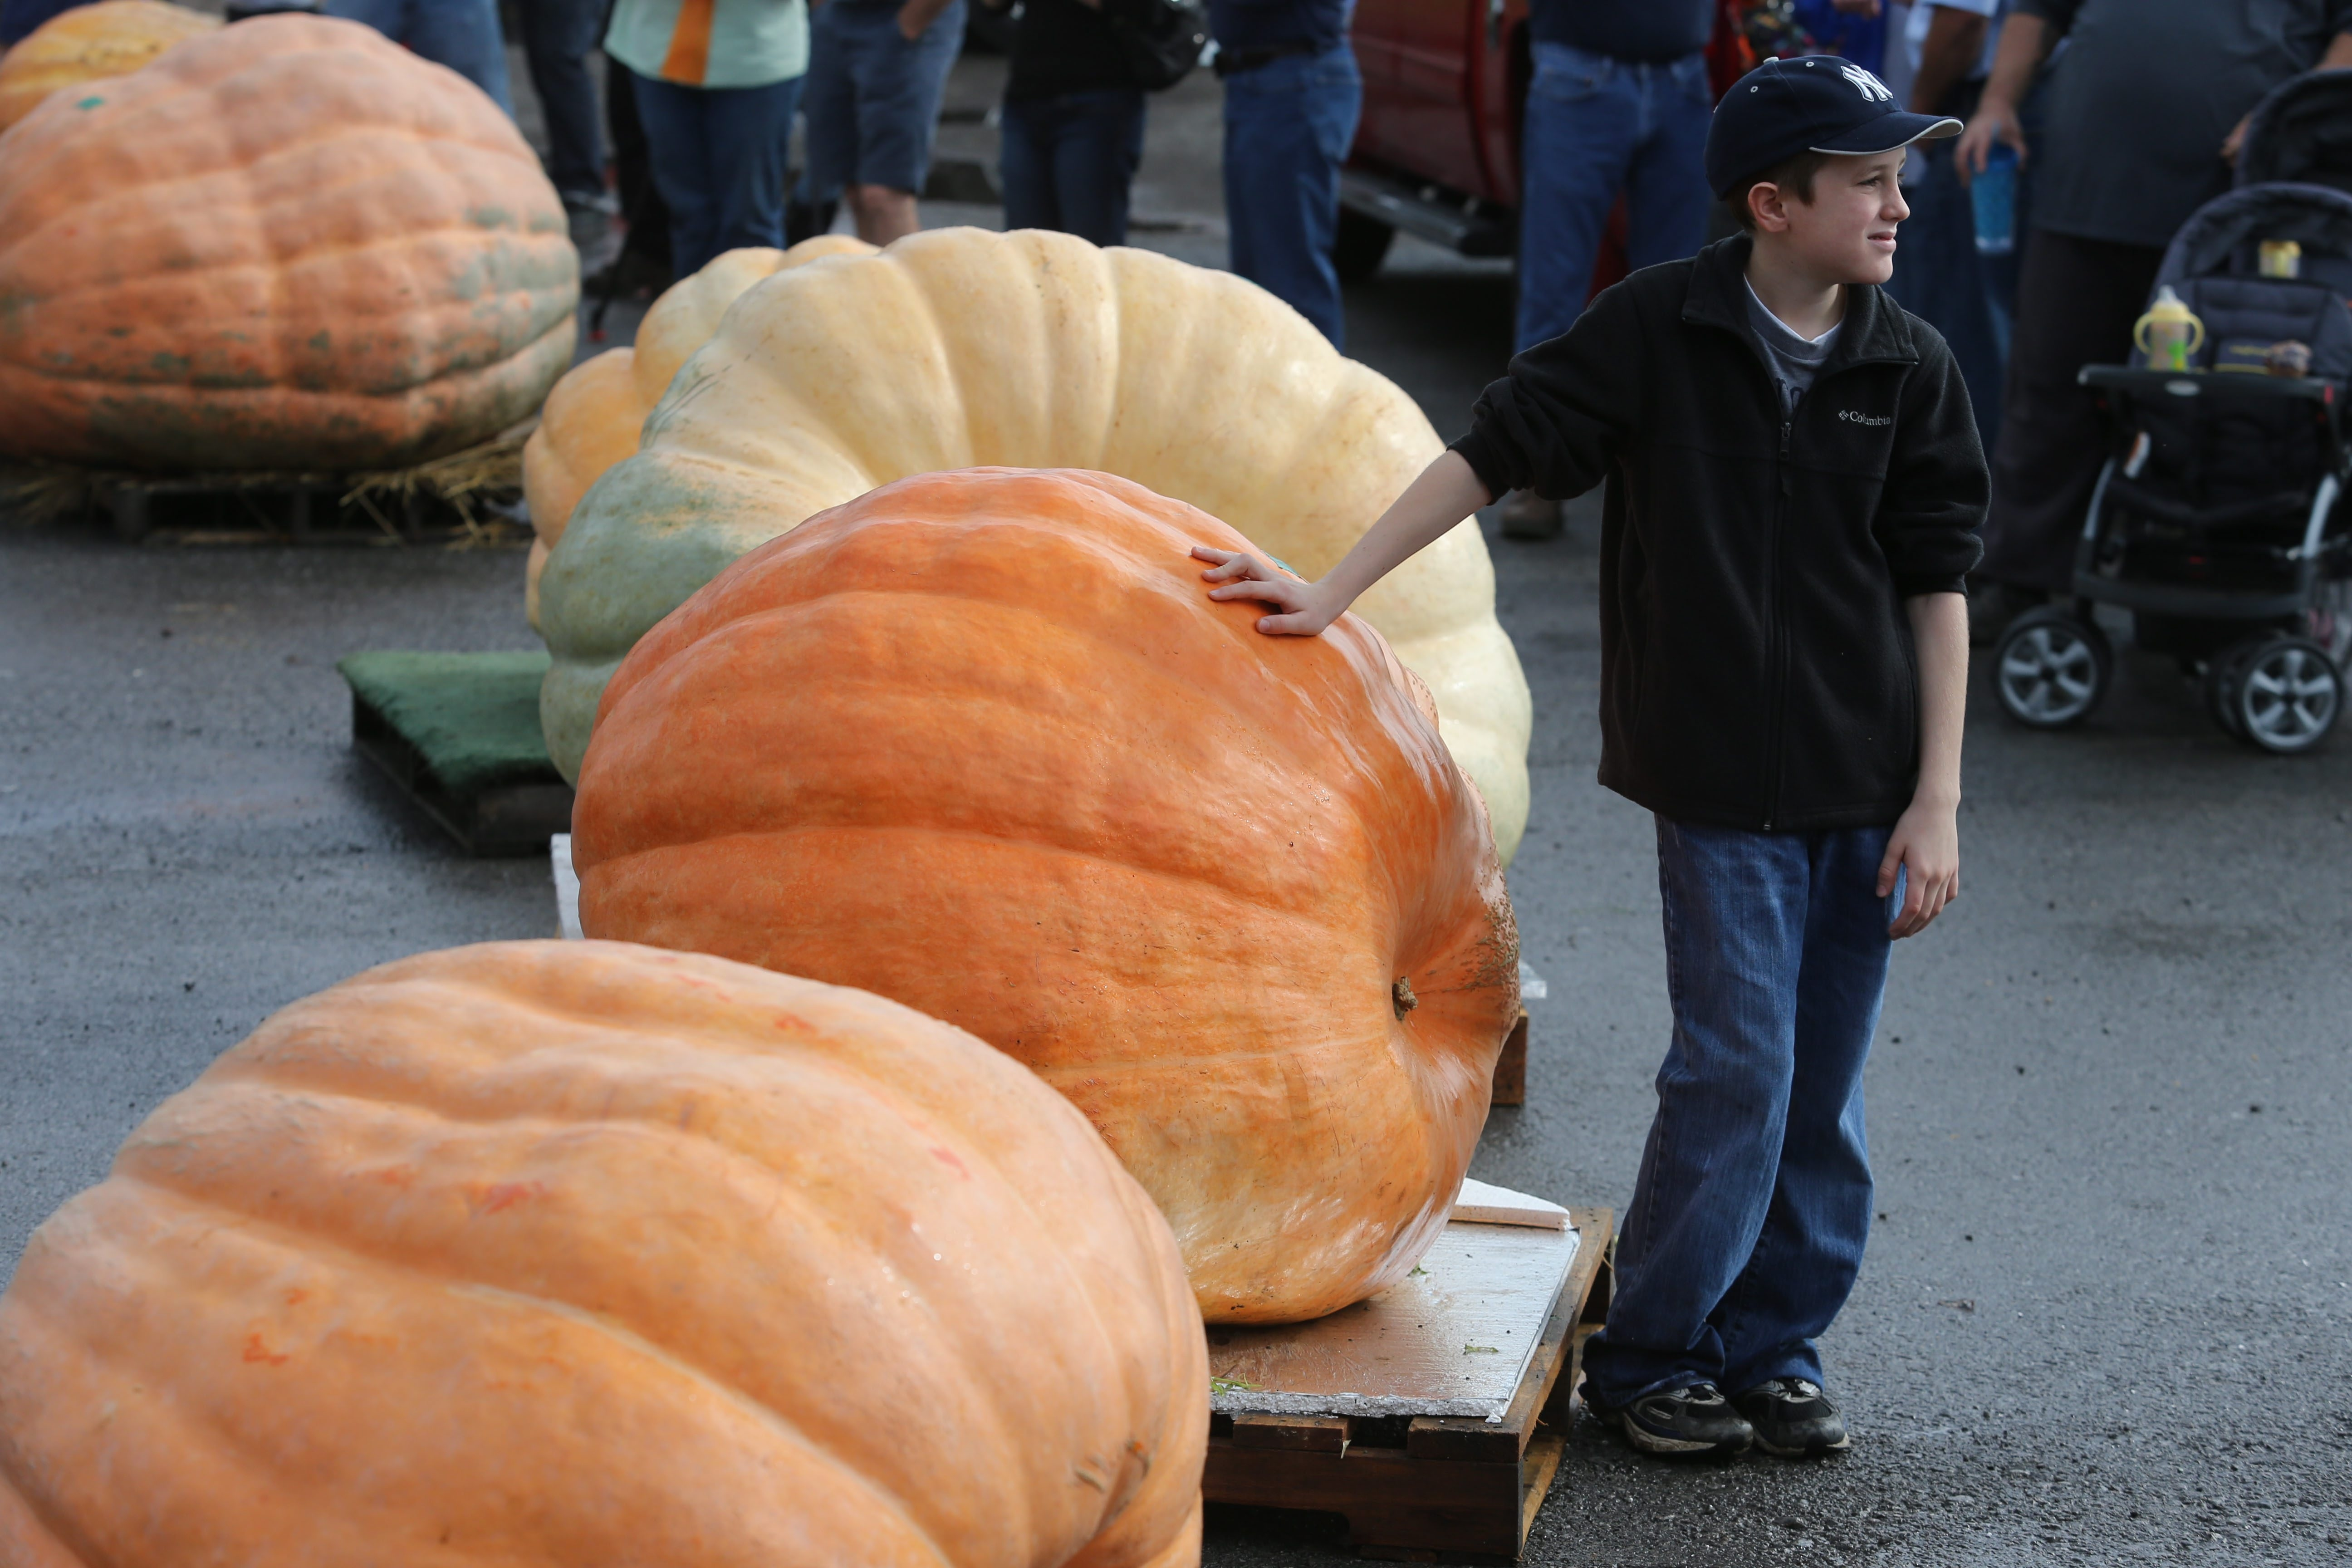 Jacob Drake, 10, of Wheatfield, rests a hand on his 574-pound pumpkin during the World Pumpkin Weigh-Off  on Sunday at the Great Pumpkin Farm in Clarence. The winning pumpkin weighed a whopping 1,552 pounds.